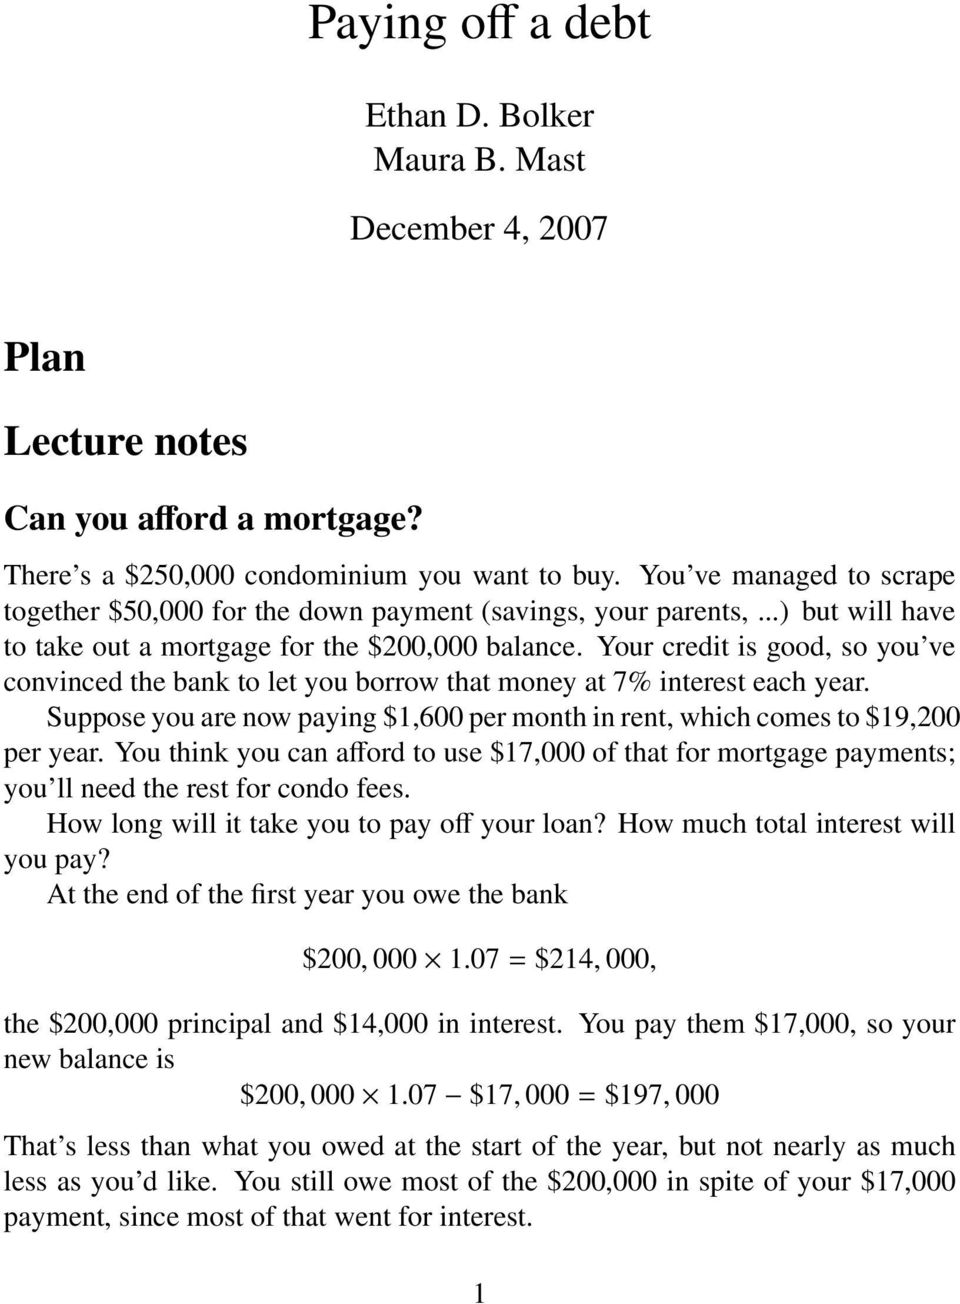 Your credit is good, so you ve convinced the bank to let you borrow that money at 7% interest each year. Suppose you are now paying $1,600 per month in rent, which comes to $19,200 per year.